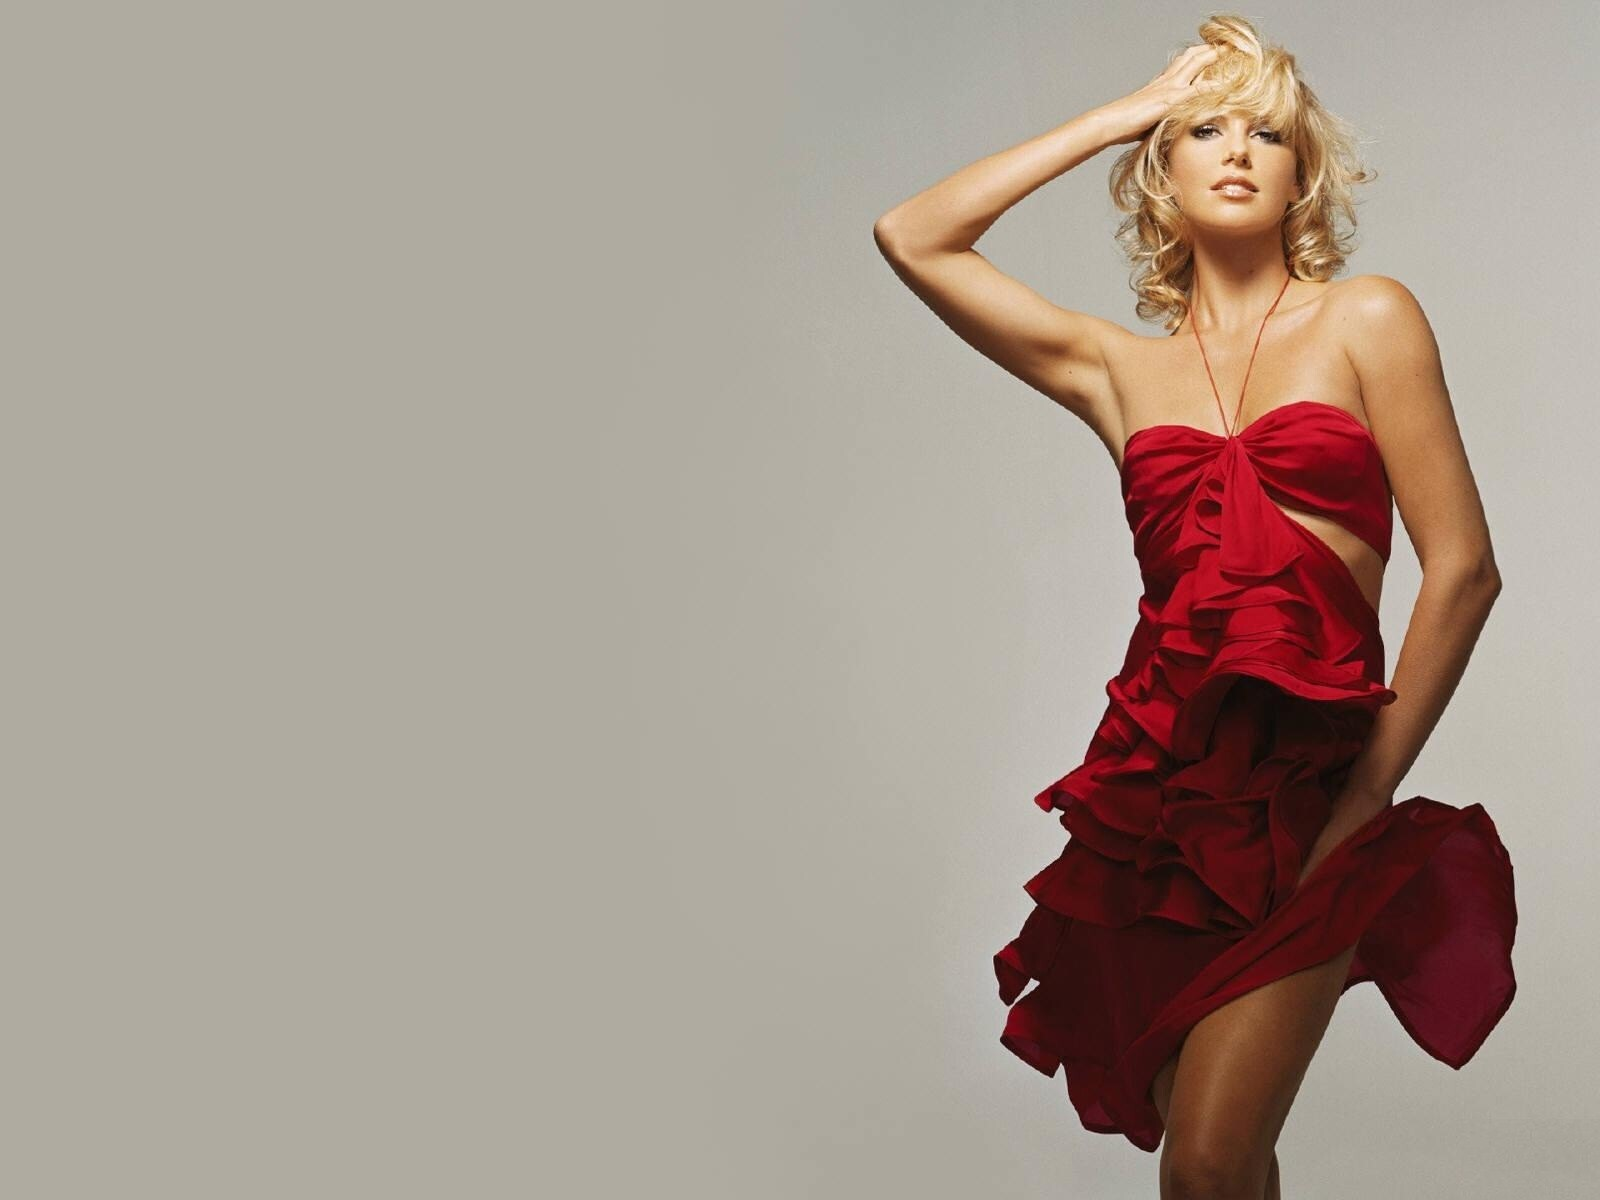 charlize theron american celebrity hd wallpapers | hd wallpapers